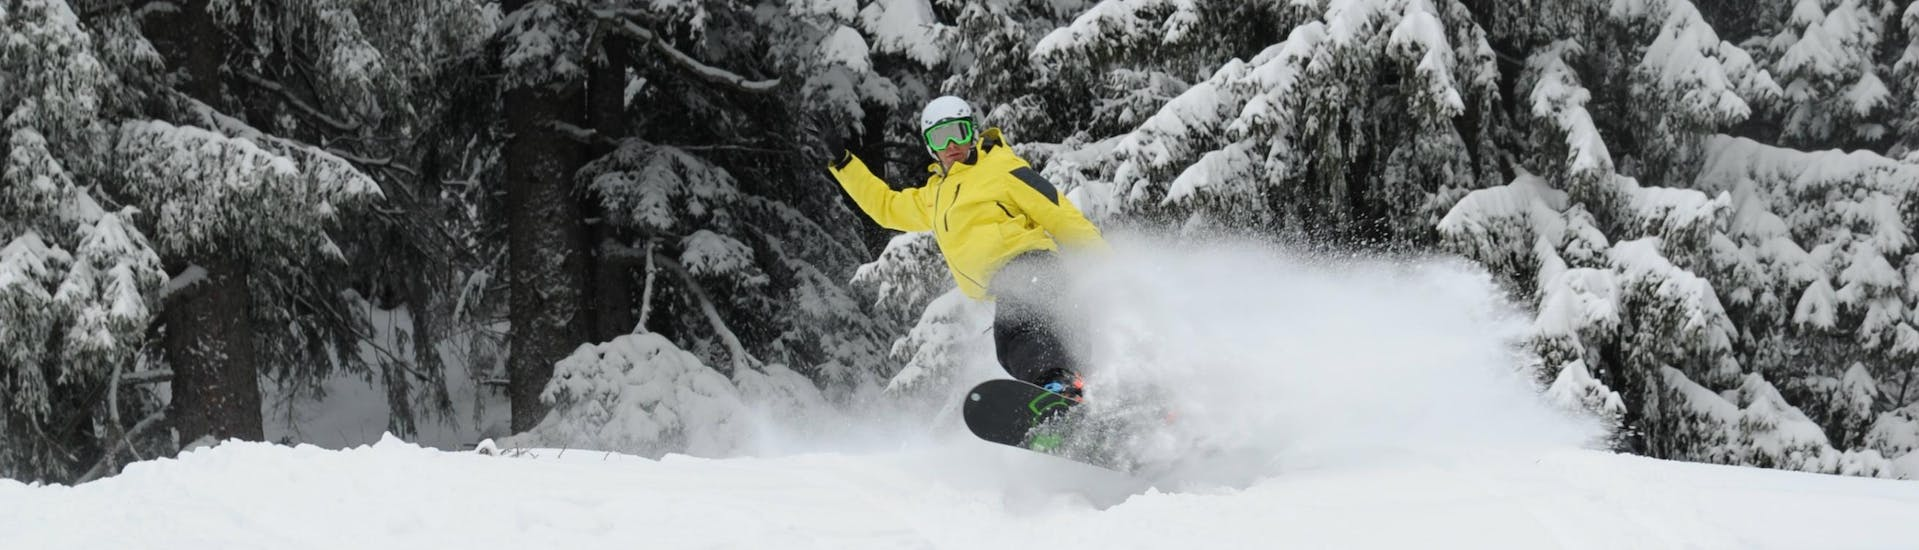 Private Snowboarding Lessons for Adults of All Levels with Skischool Ecki Kober - Brauneck - Hero image